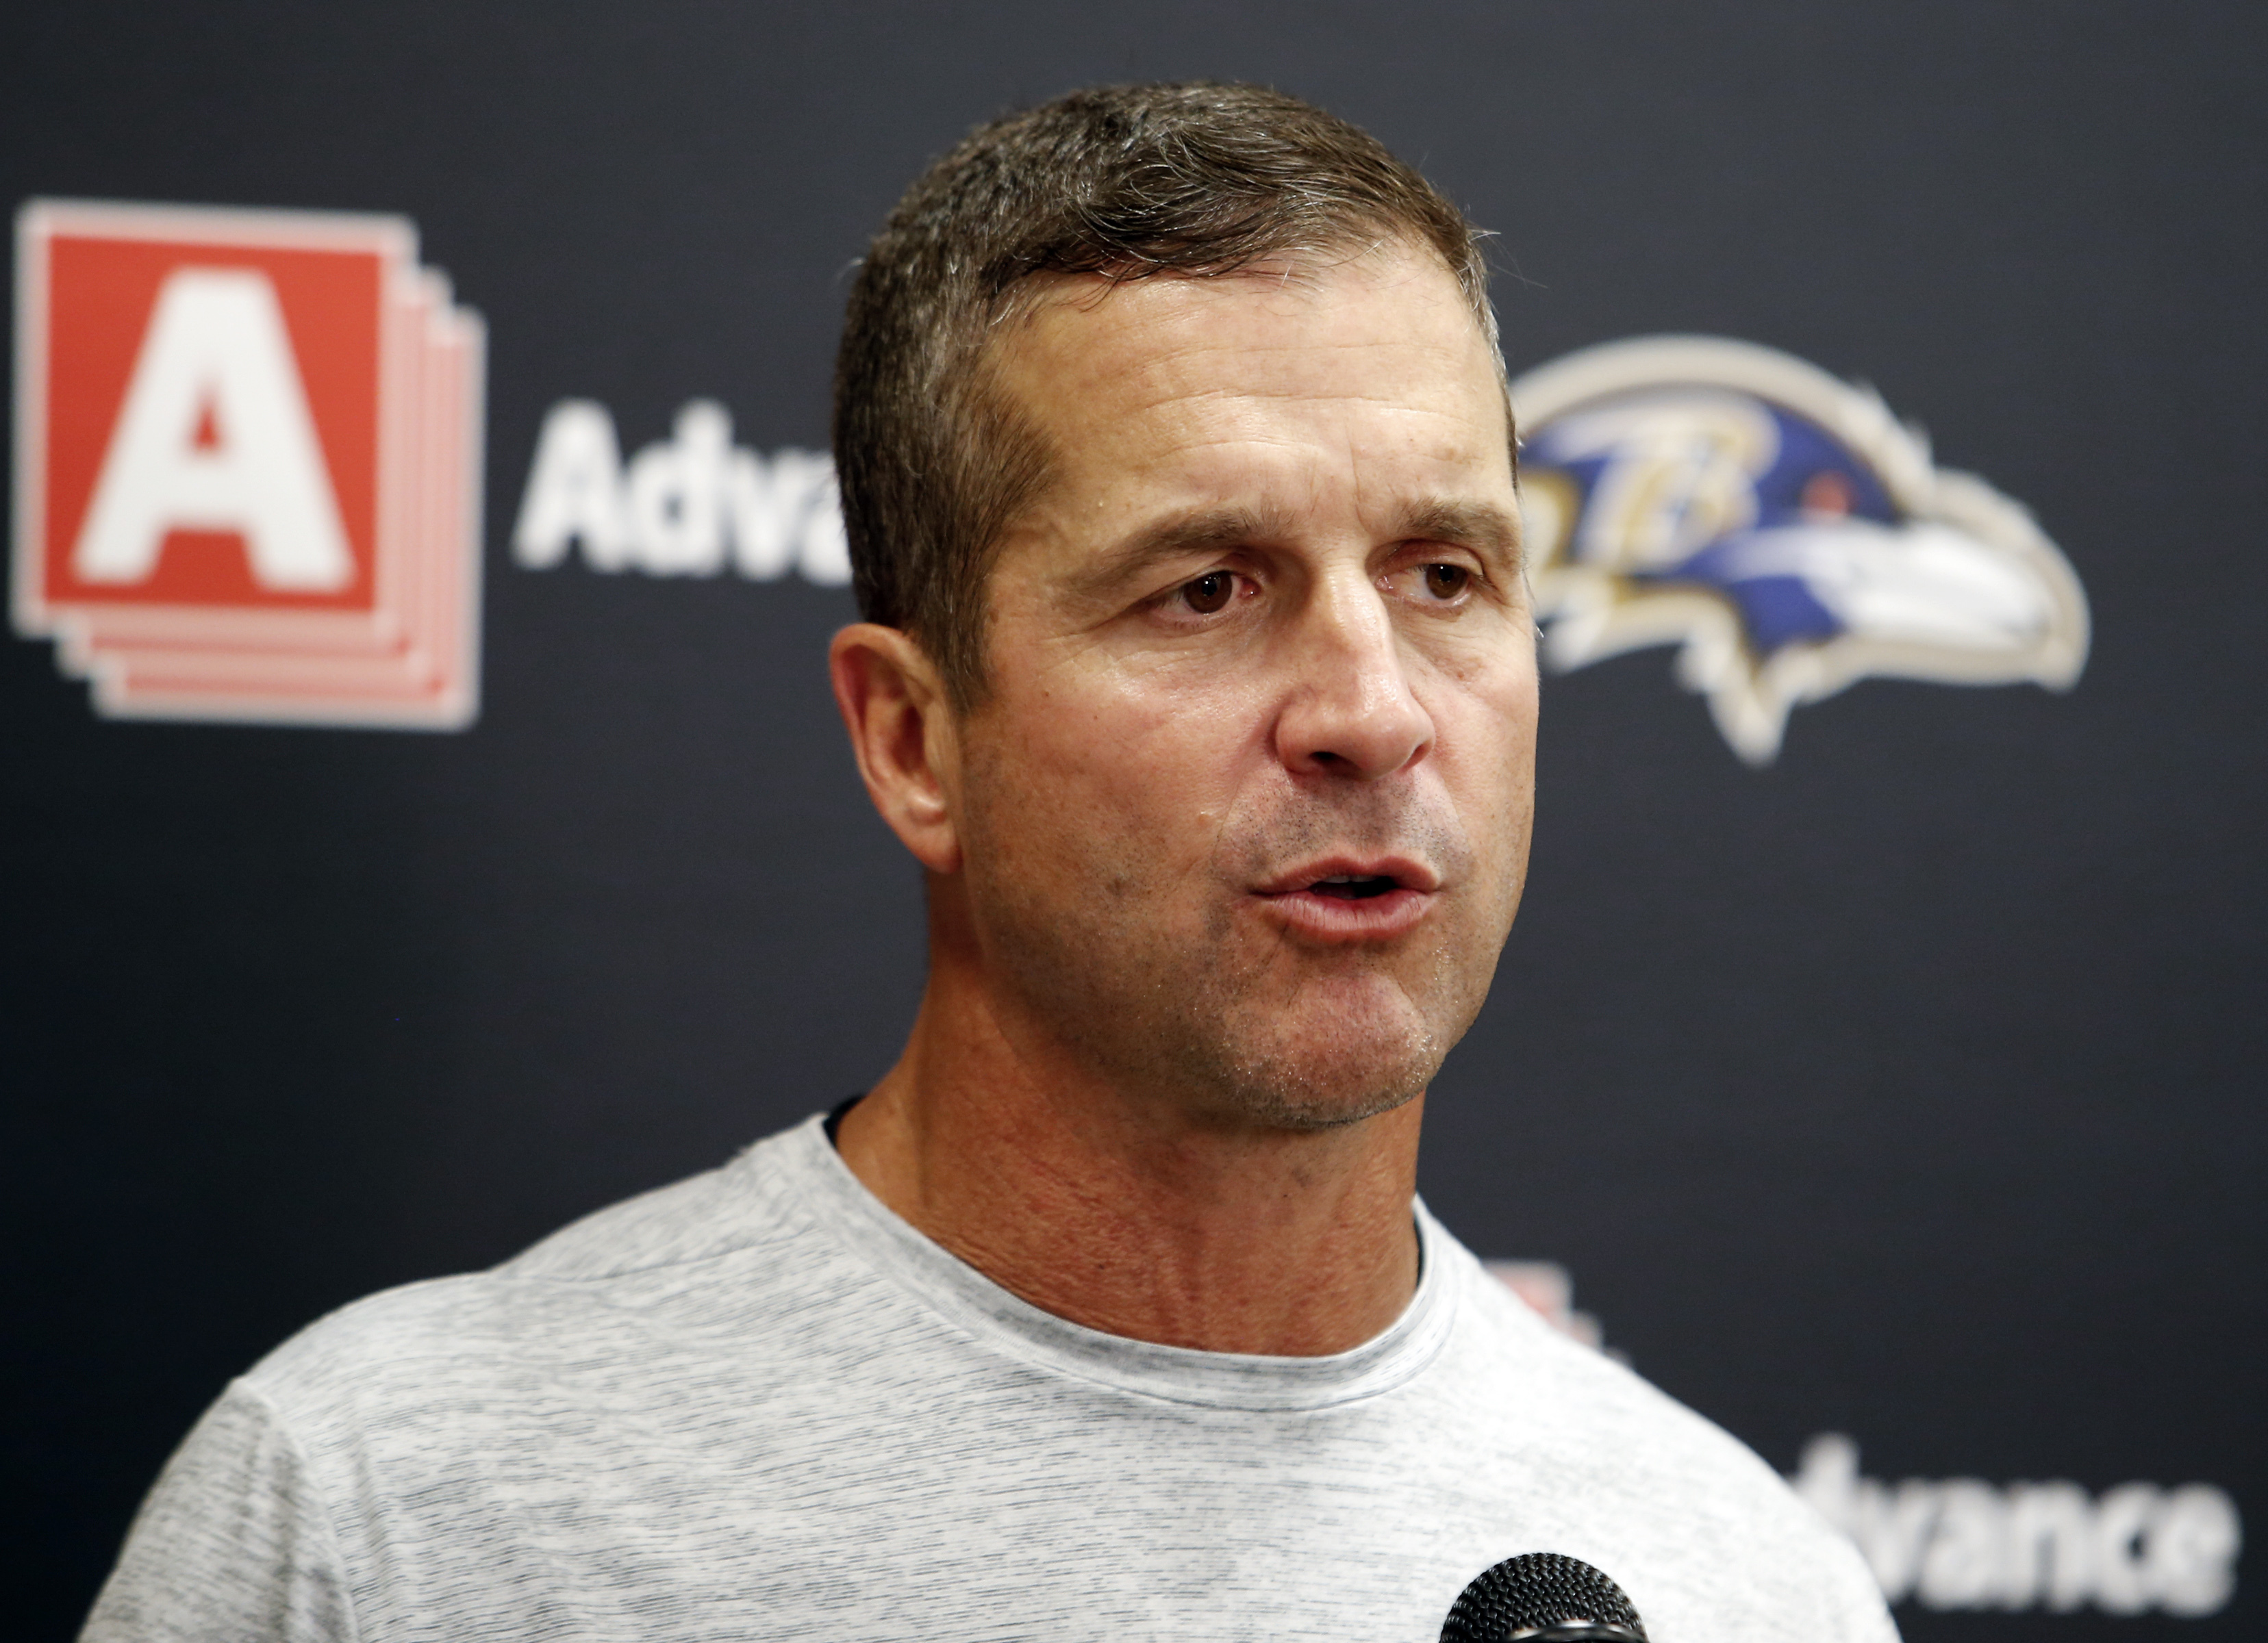 FILE - In this Sept. 18, 2016, file photo, Baltimore Ravens head coach John Harbaugh speaks to the media during a news conference after an NFL football game against the Cleveland Browns, in Cleveland.  The Ravens returned from their bye week rested, heale